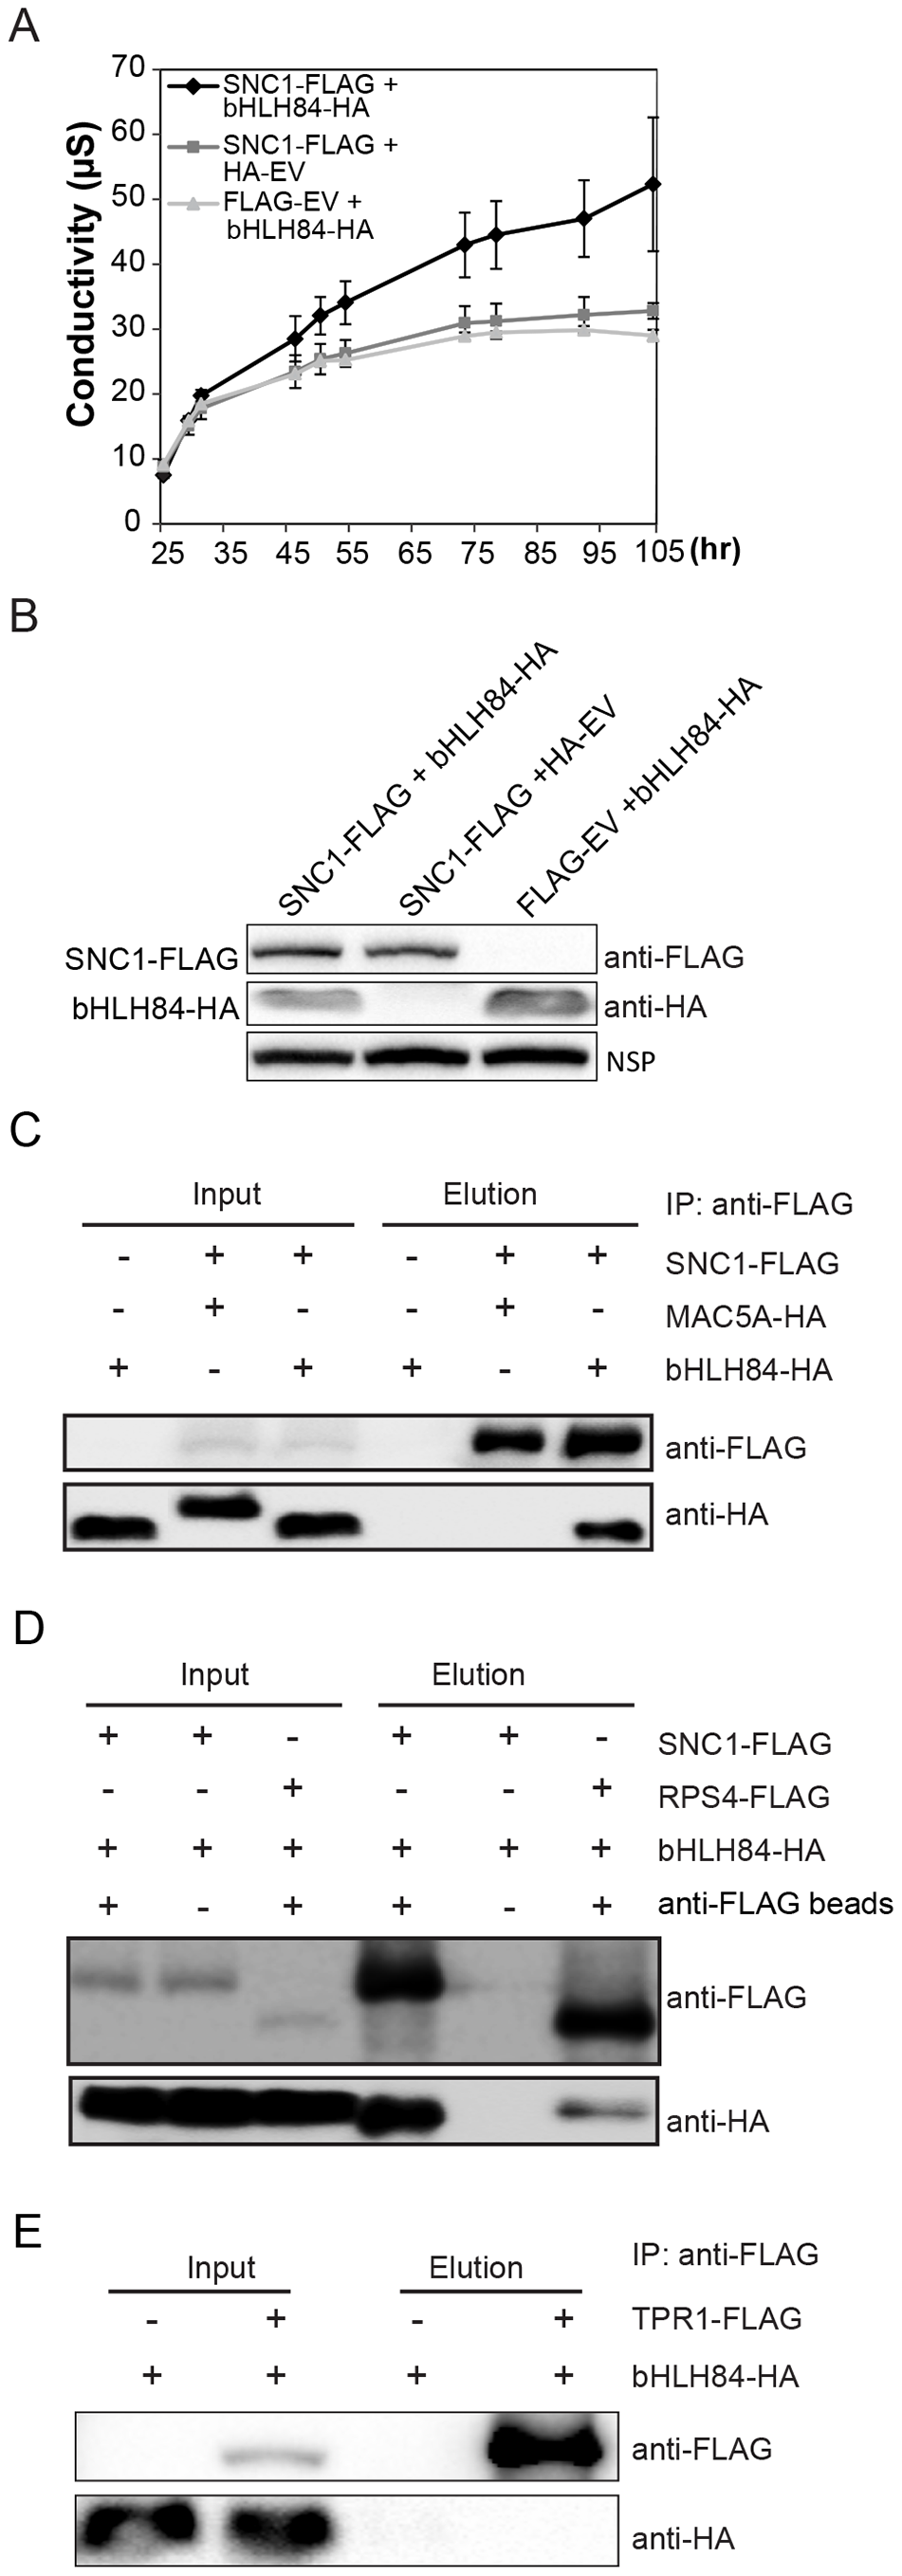 bHLH84 interacts with SNC1 or RPS4 <i>in planta</i>.